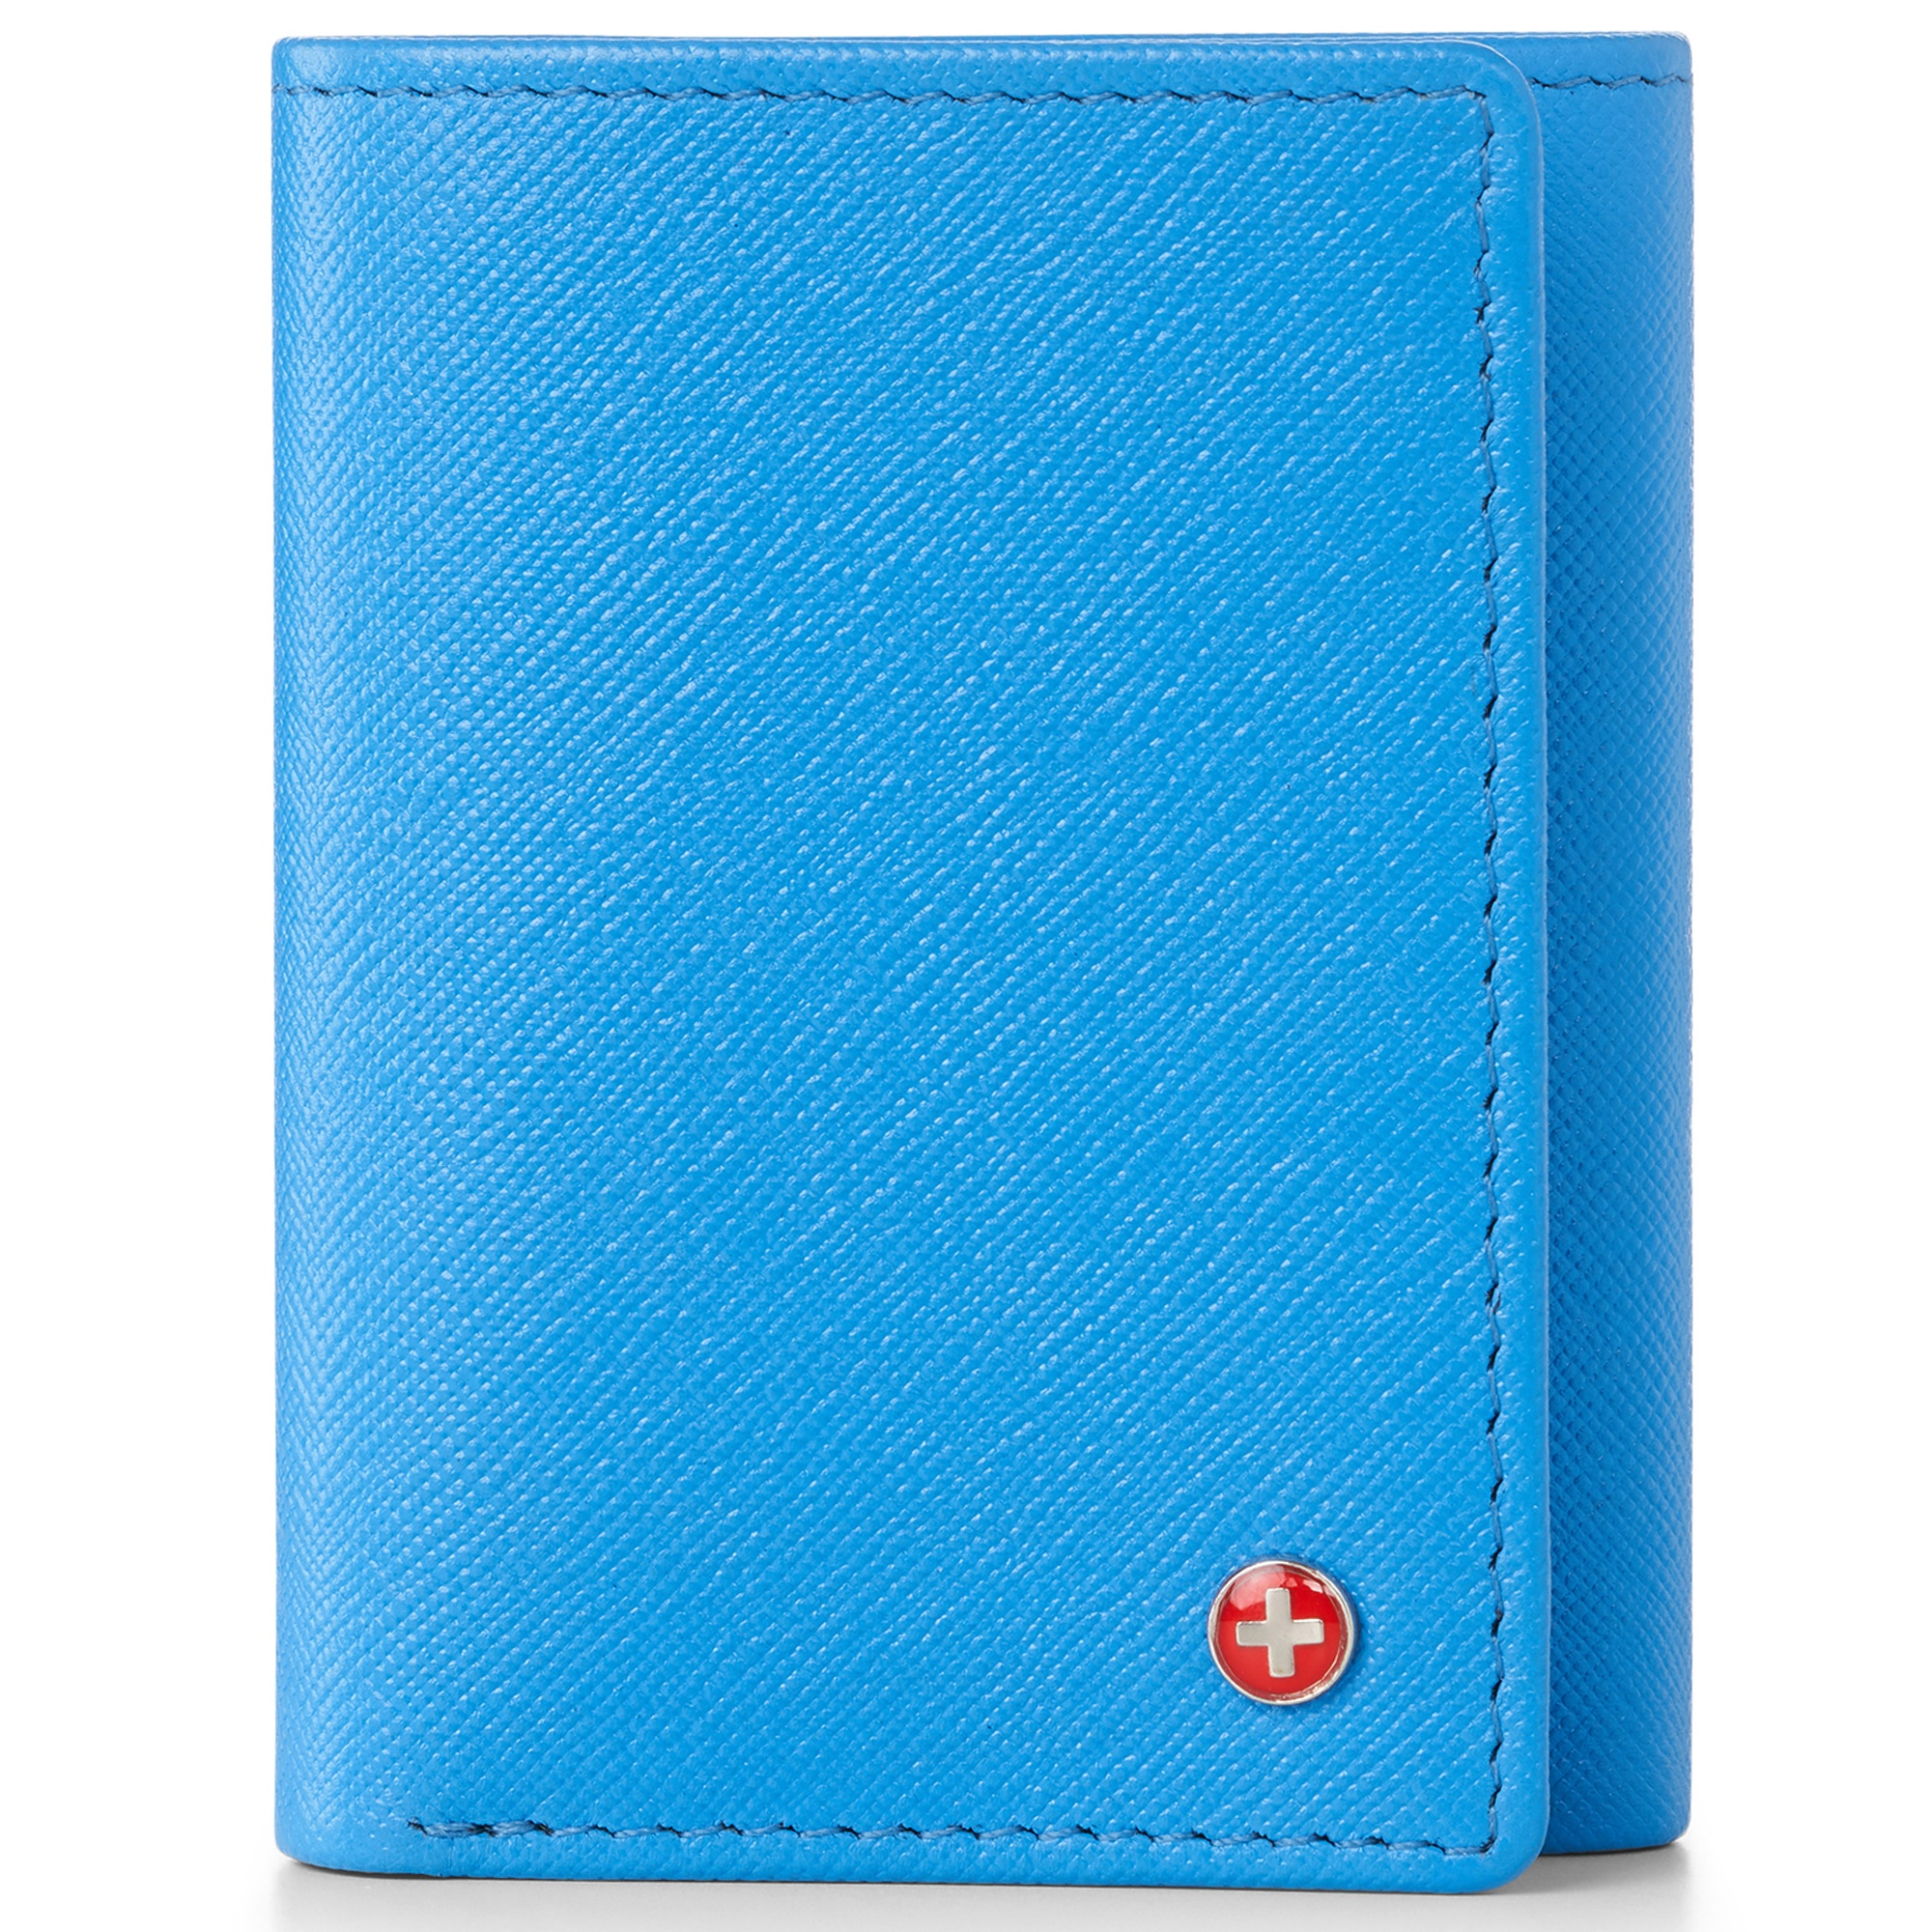 Alpine-Swiss-RFID-Mens-Wallet-Deluxe-Capacity-Trifold-With-Divided-Bill-Section thumbnail 33